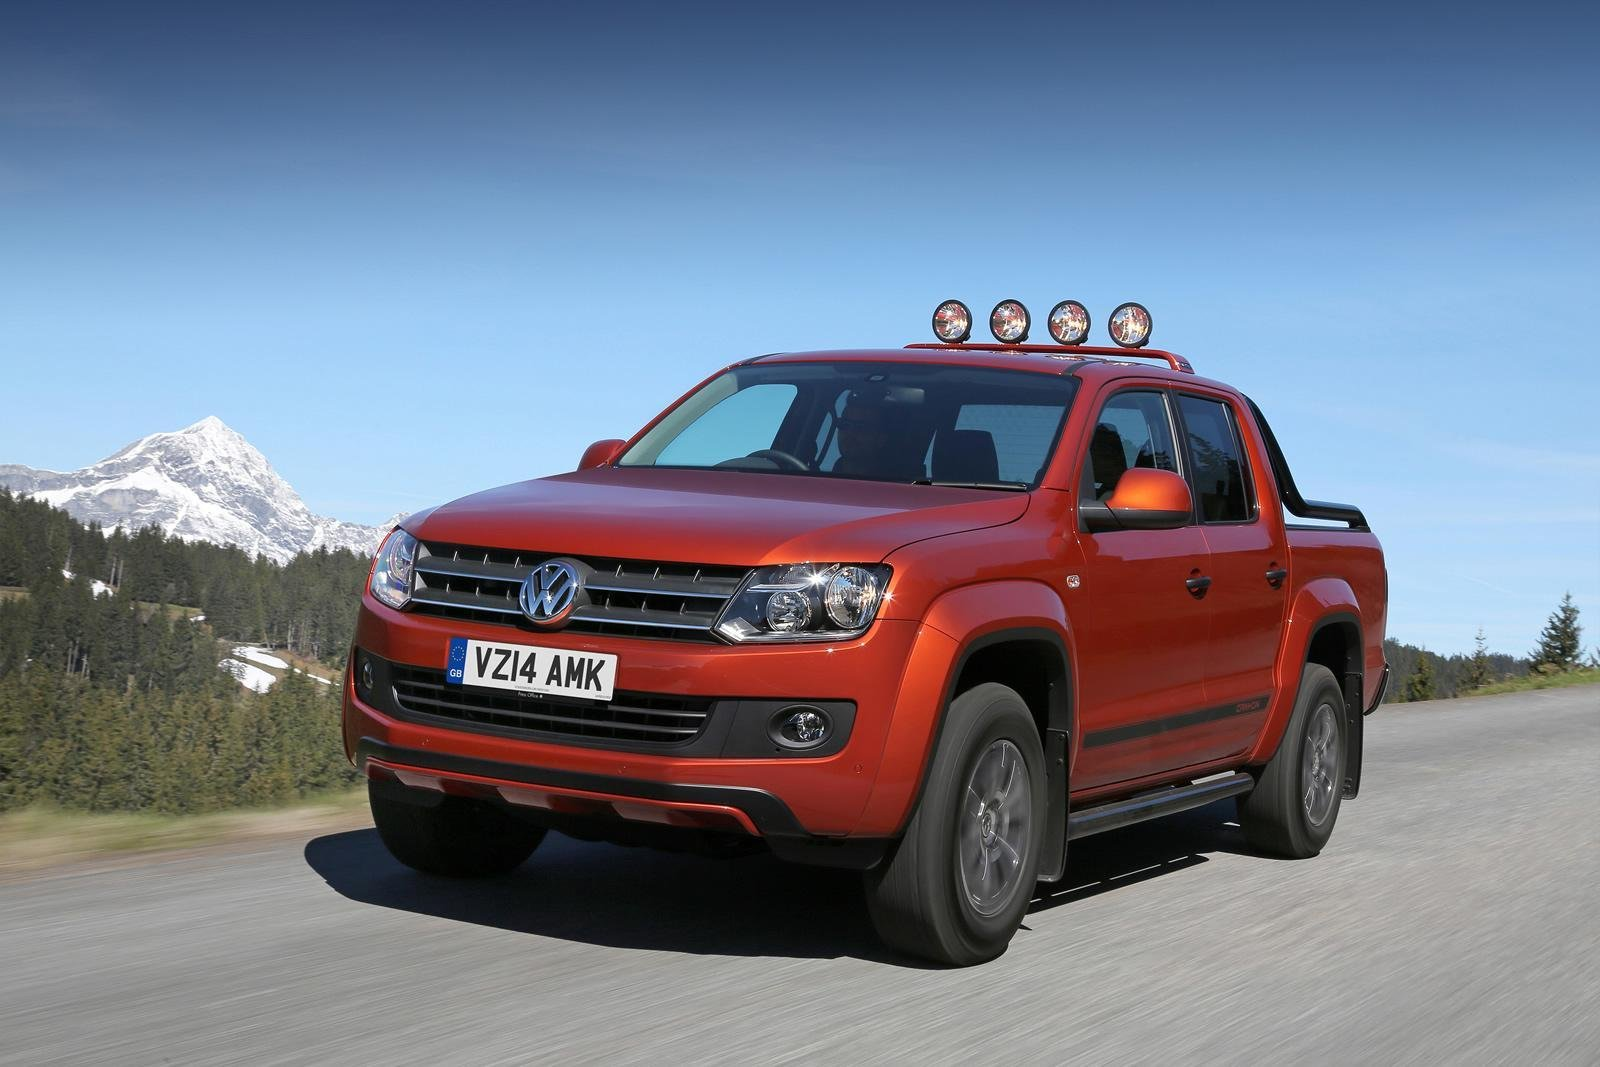 2014 volkswagen amarok canyon review top speed. Black Bedroom Furniture Sets. Home Design Ideas